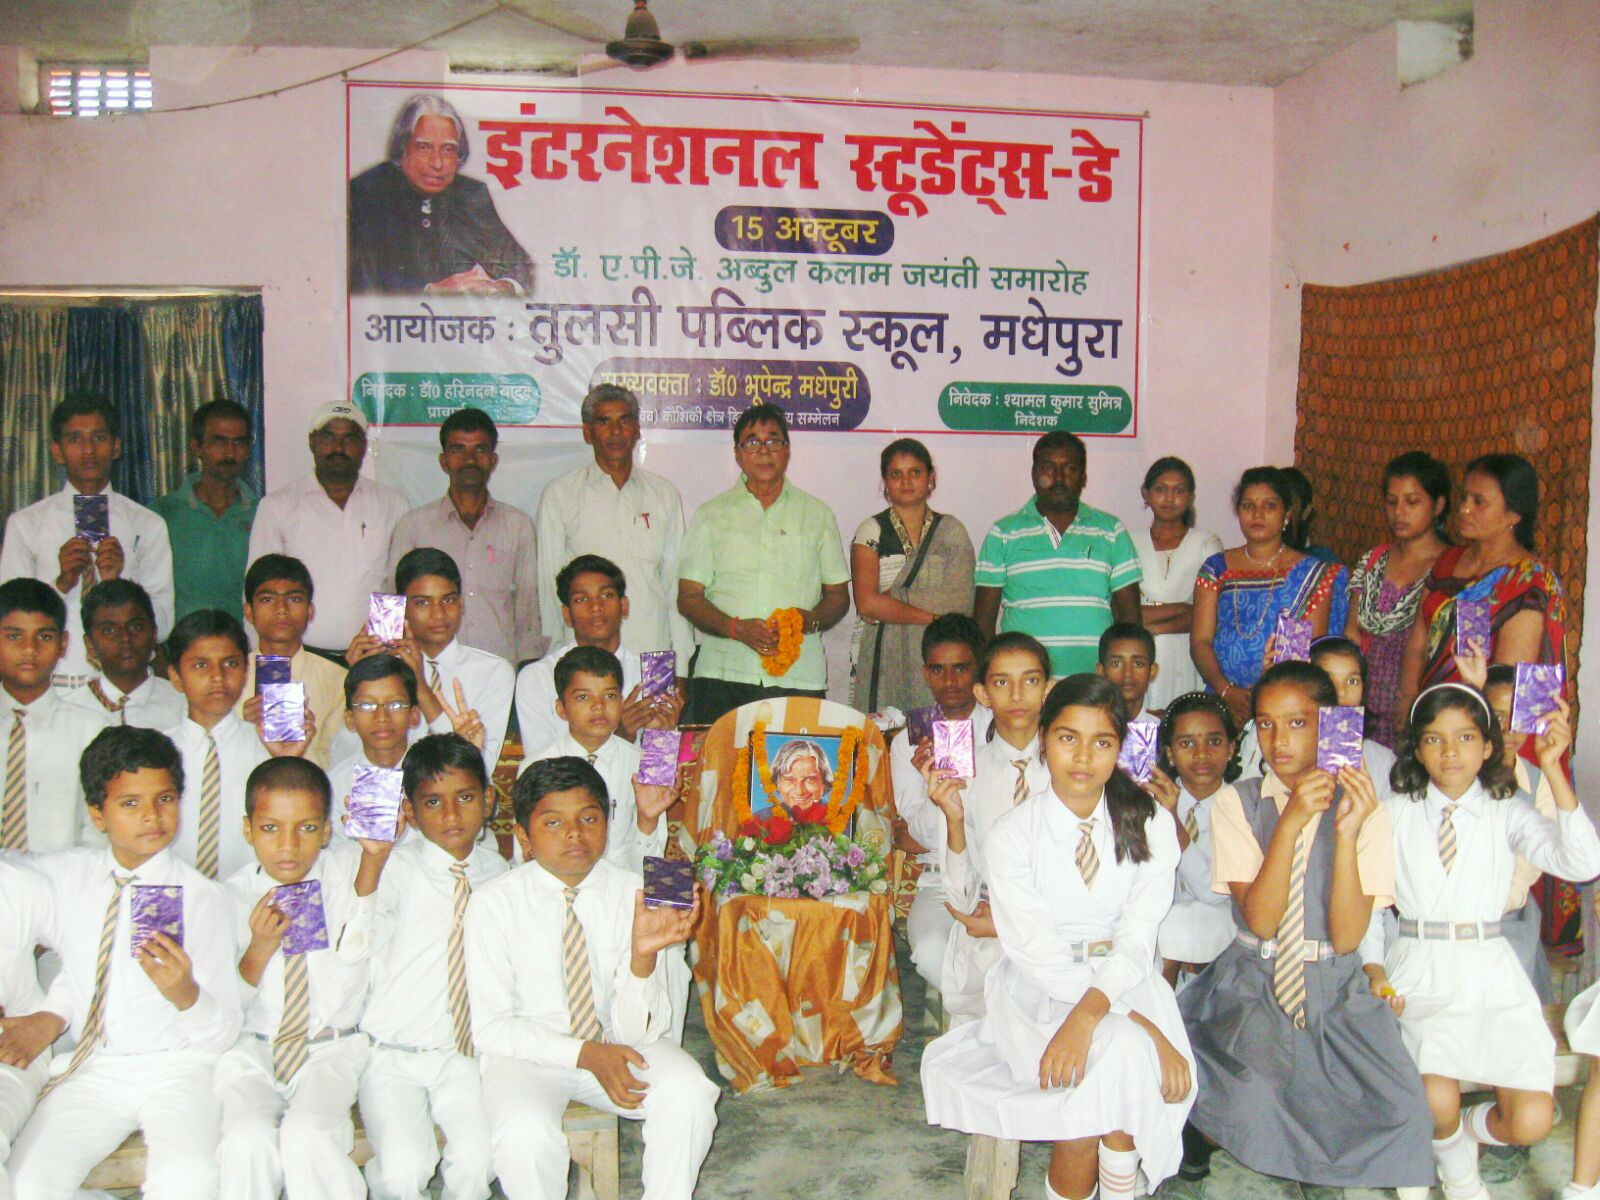 Dr. Bhupendra Madhepuri Celebrating International Students Day with School Children at Madhepura